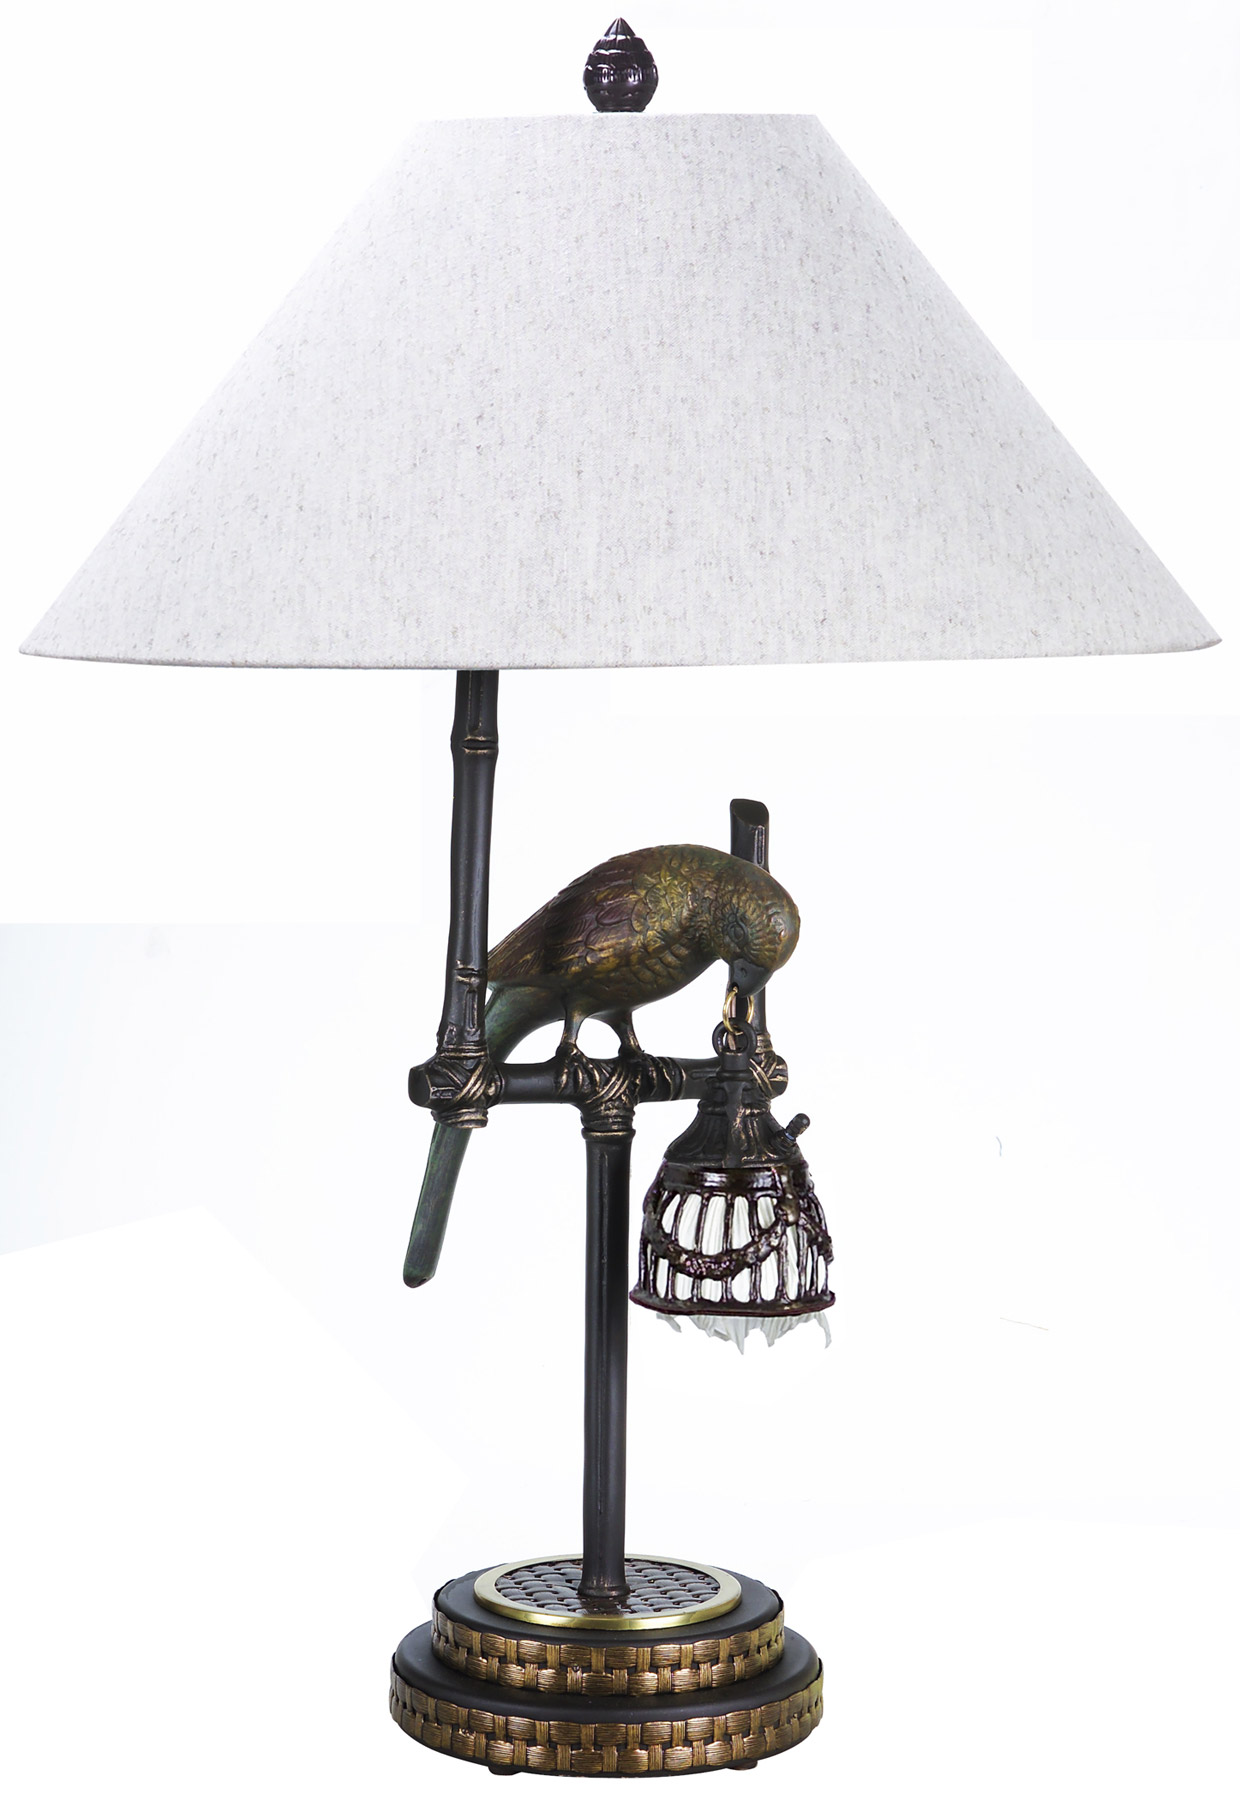 frederick cooper 65261 2 polly by night table lamp